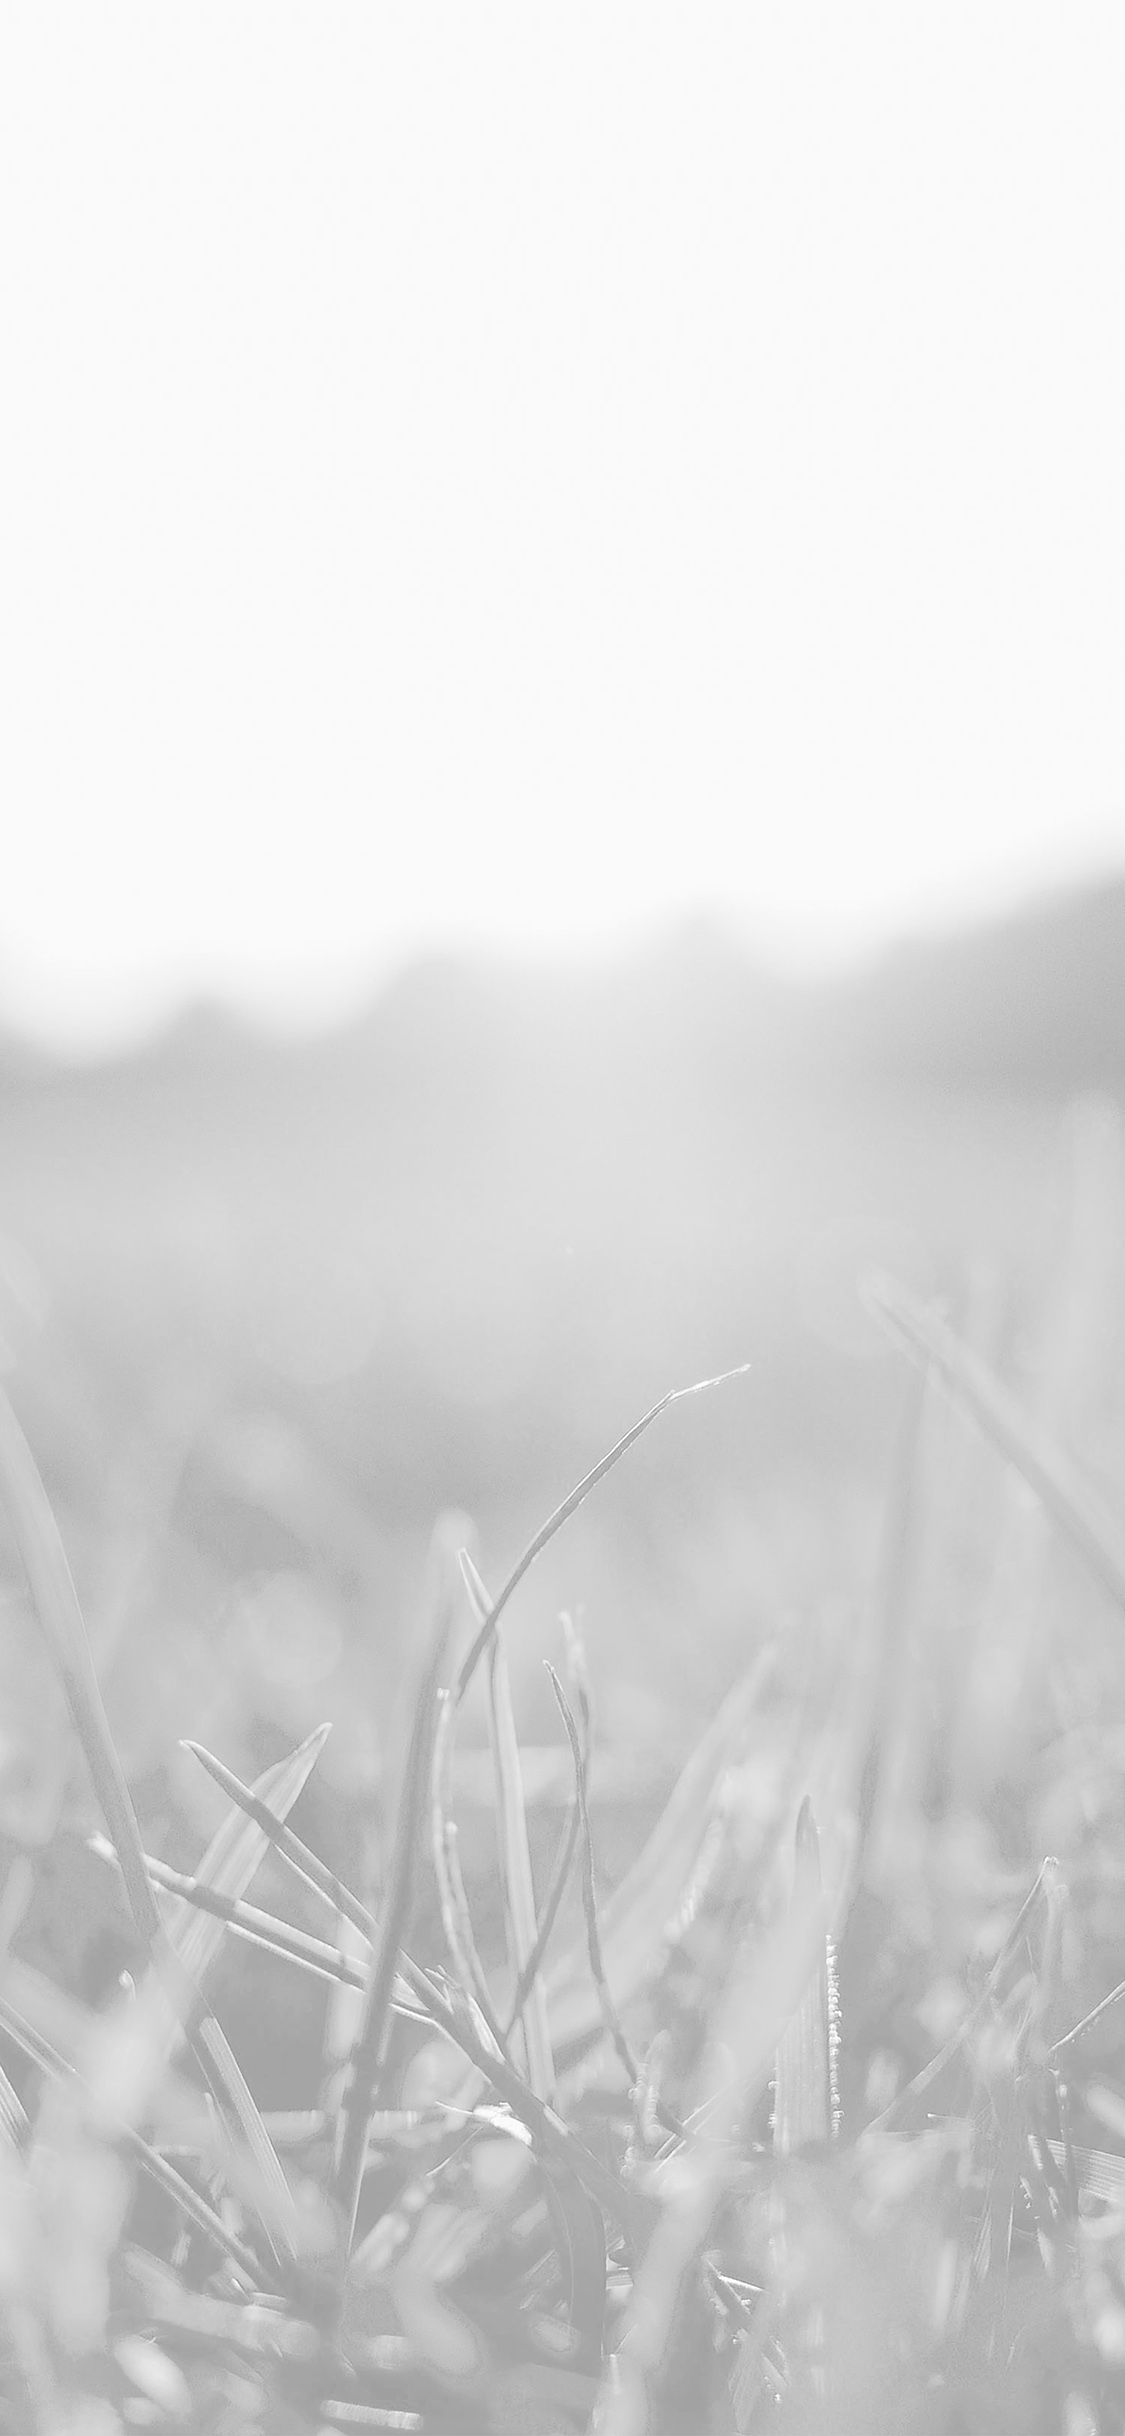 Iphone11papers Com Iphone11 Wallpaper Mw49 Grass White Bokeh Light Summer Nature